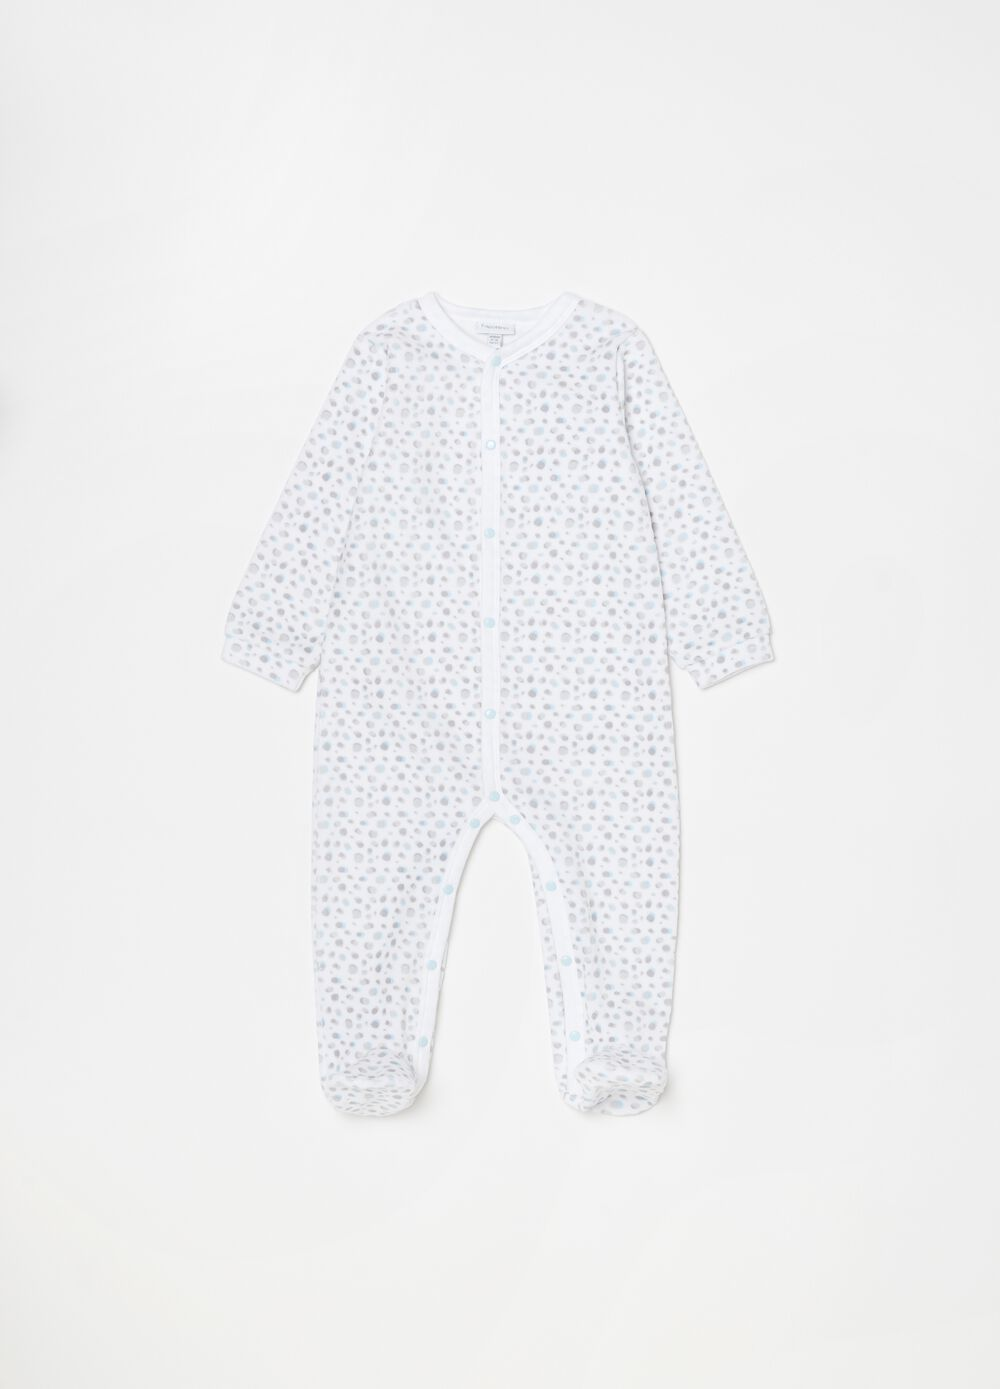 Onesie with feet and macro polka dot print